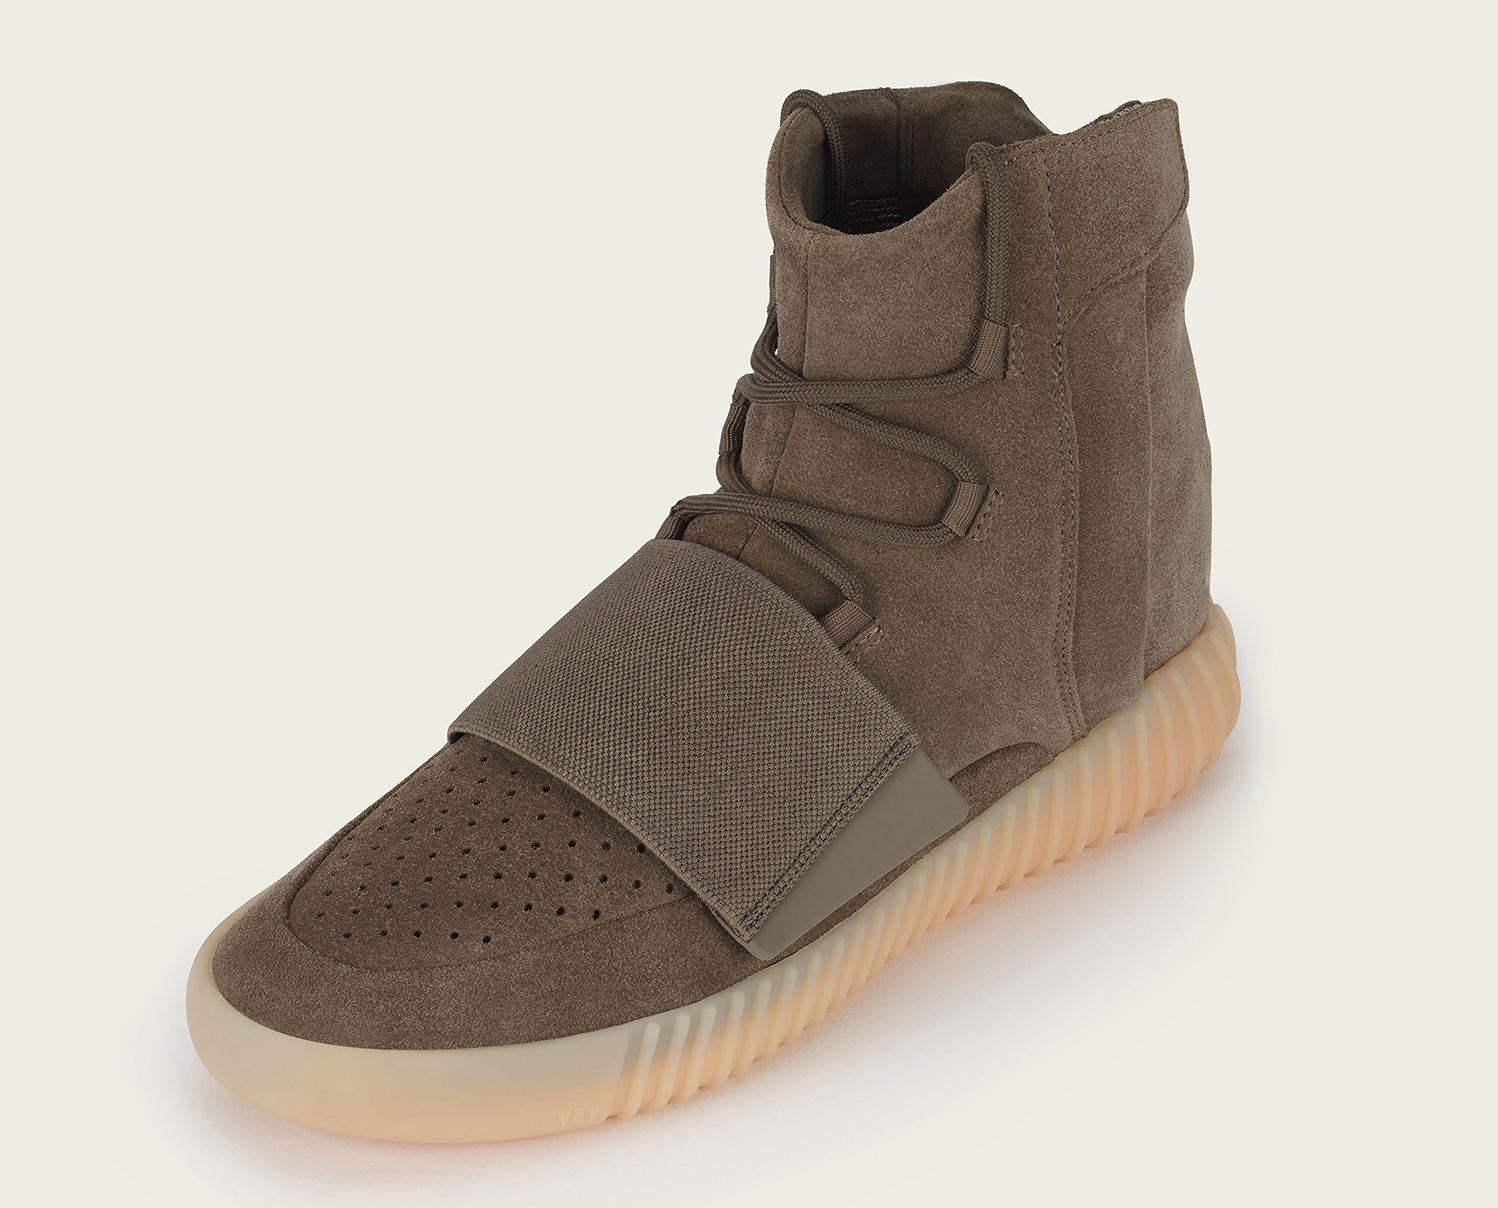 adidas-yeezy-boost-750-chocolate_04